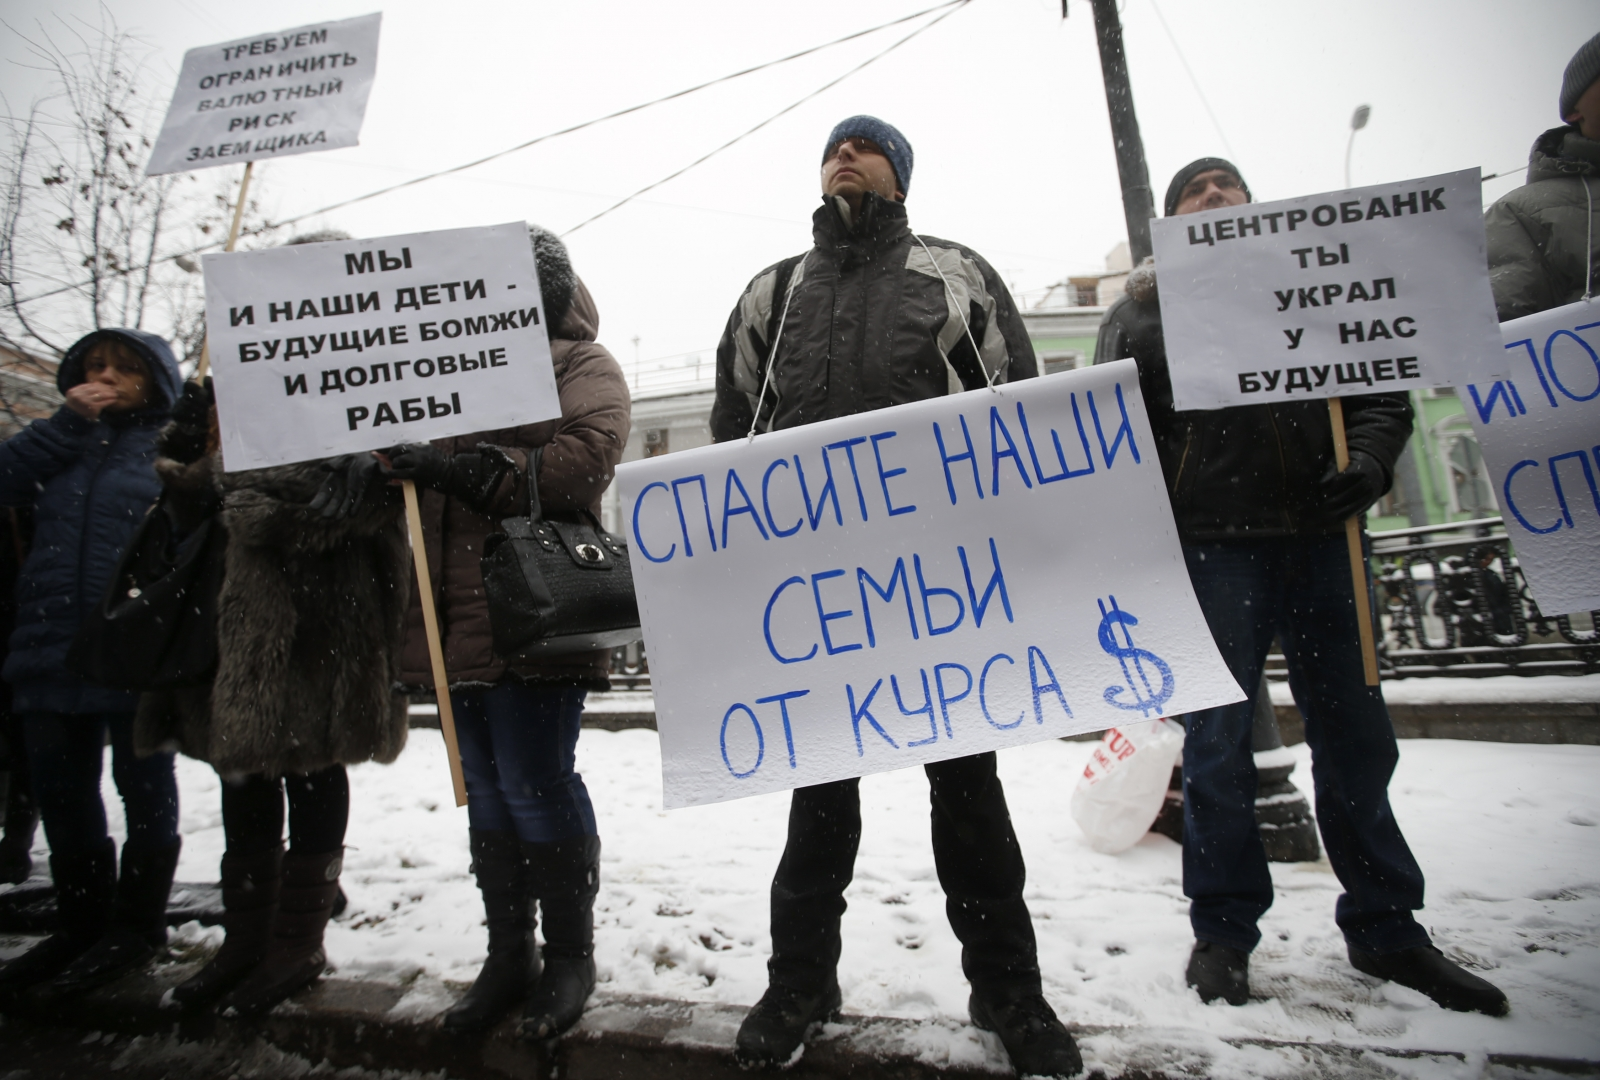 Protesters hold placards during a picket in central Moscow, December 12, 2014. According to local media, the people, who took mortgages in foreign currencies, now face larger risks due to the weakening of the rouble. The placards read,